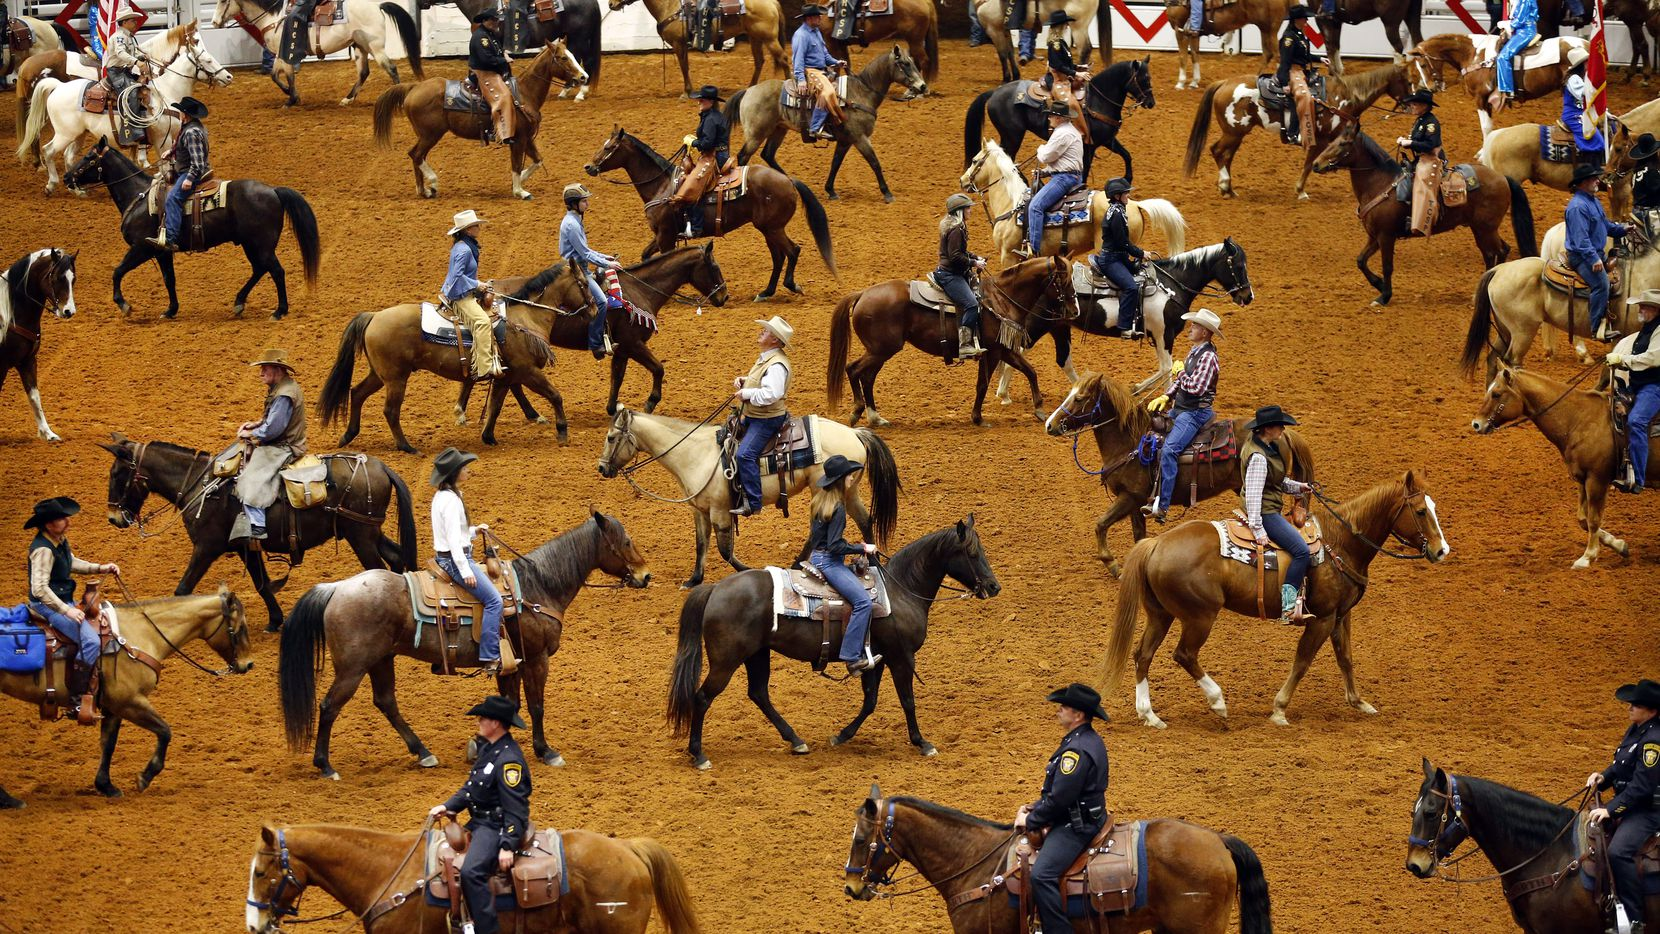 The grand entry kicks off the Professional Rodeo Cowboys Association rodeo at the Fort Worth Stock Show and Rodeo.